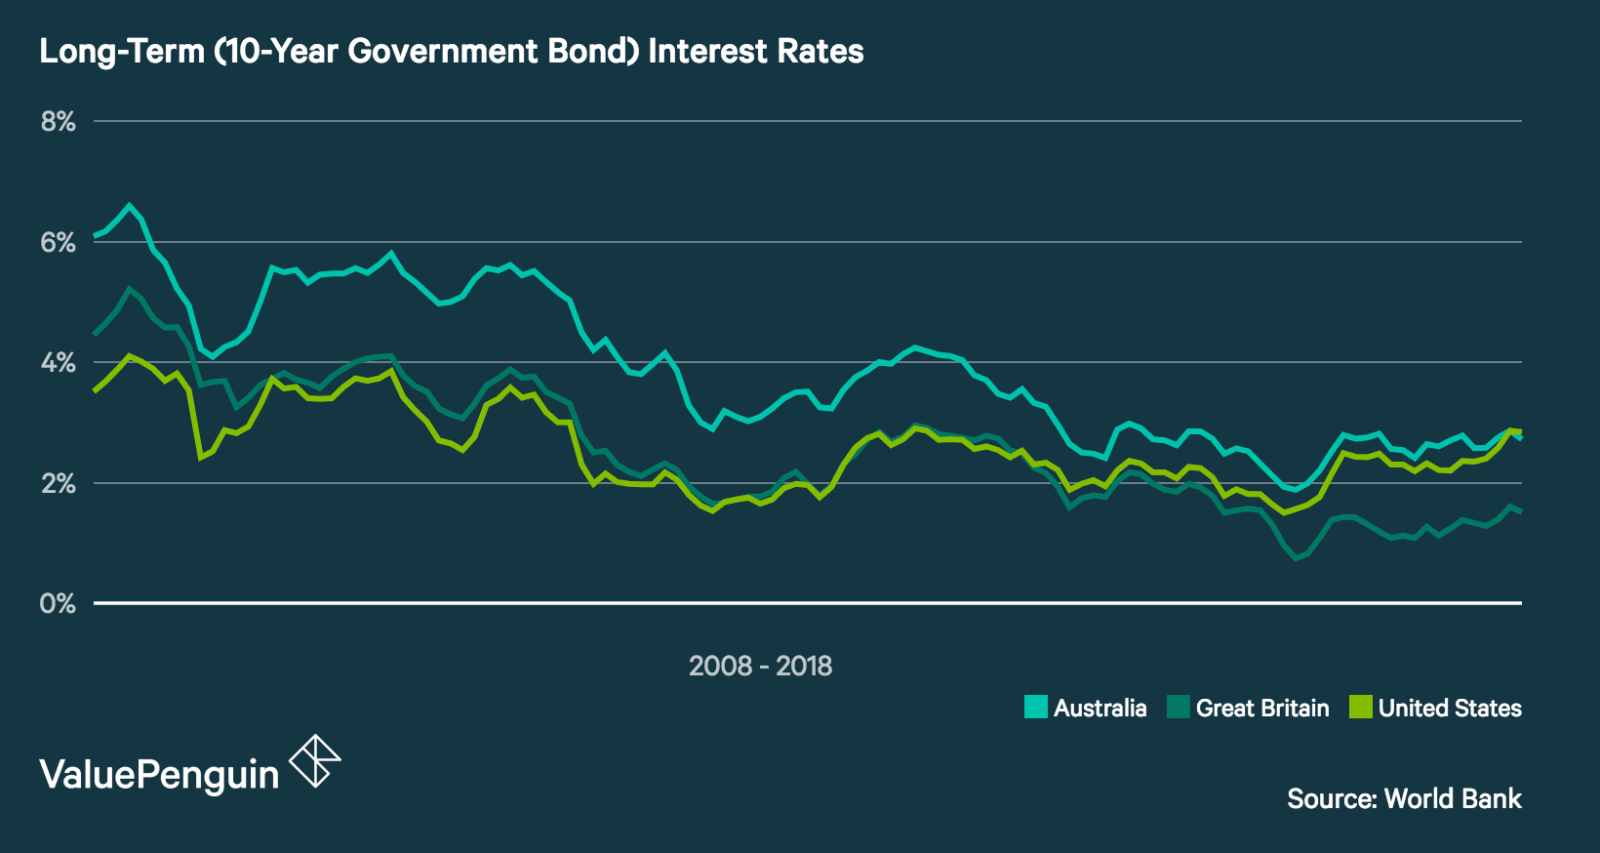 Long-Term (10-year Government Bond) Interest Rates